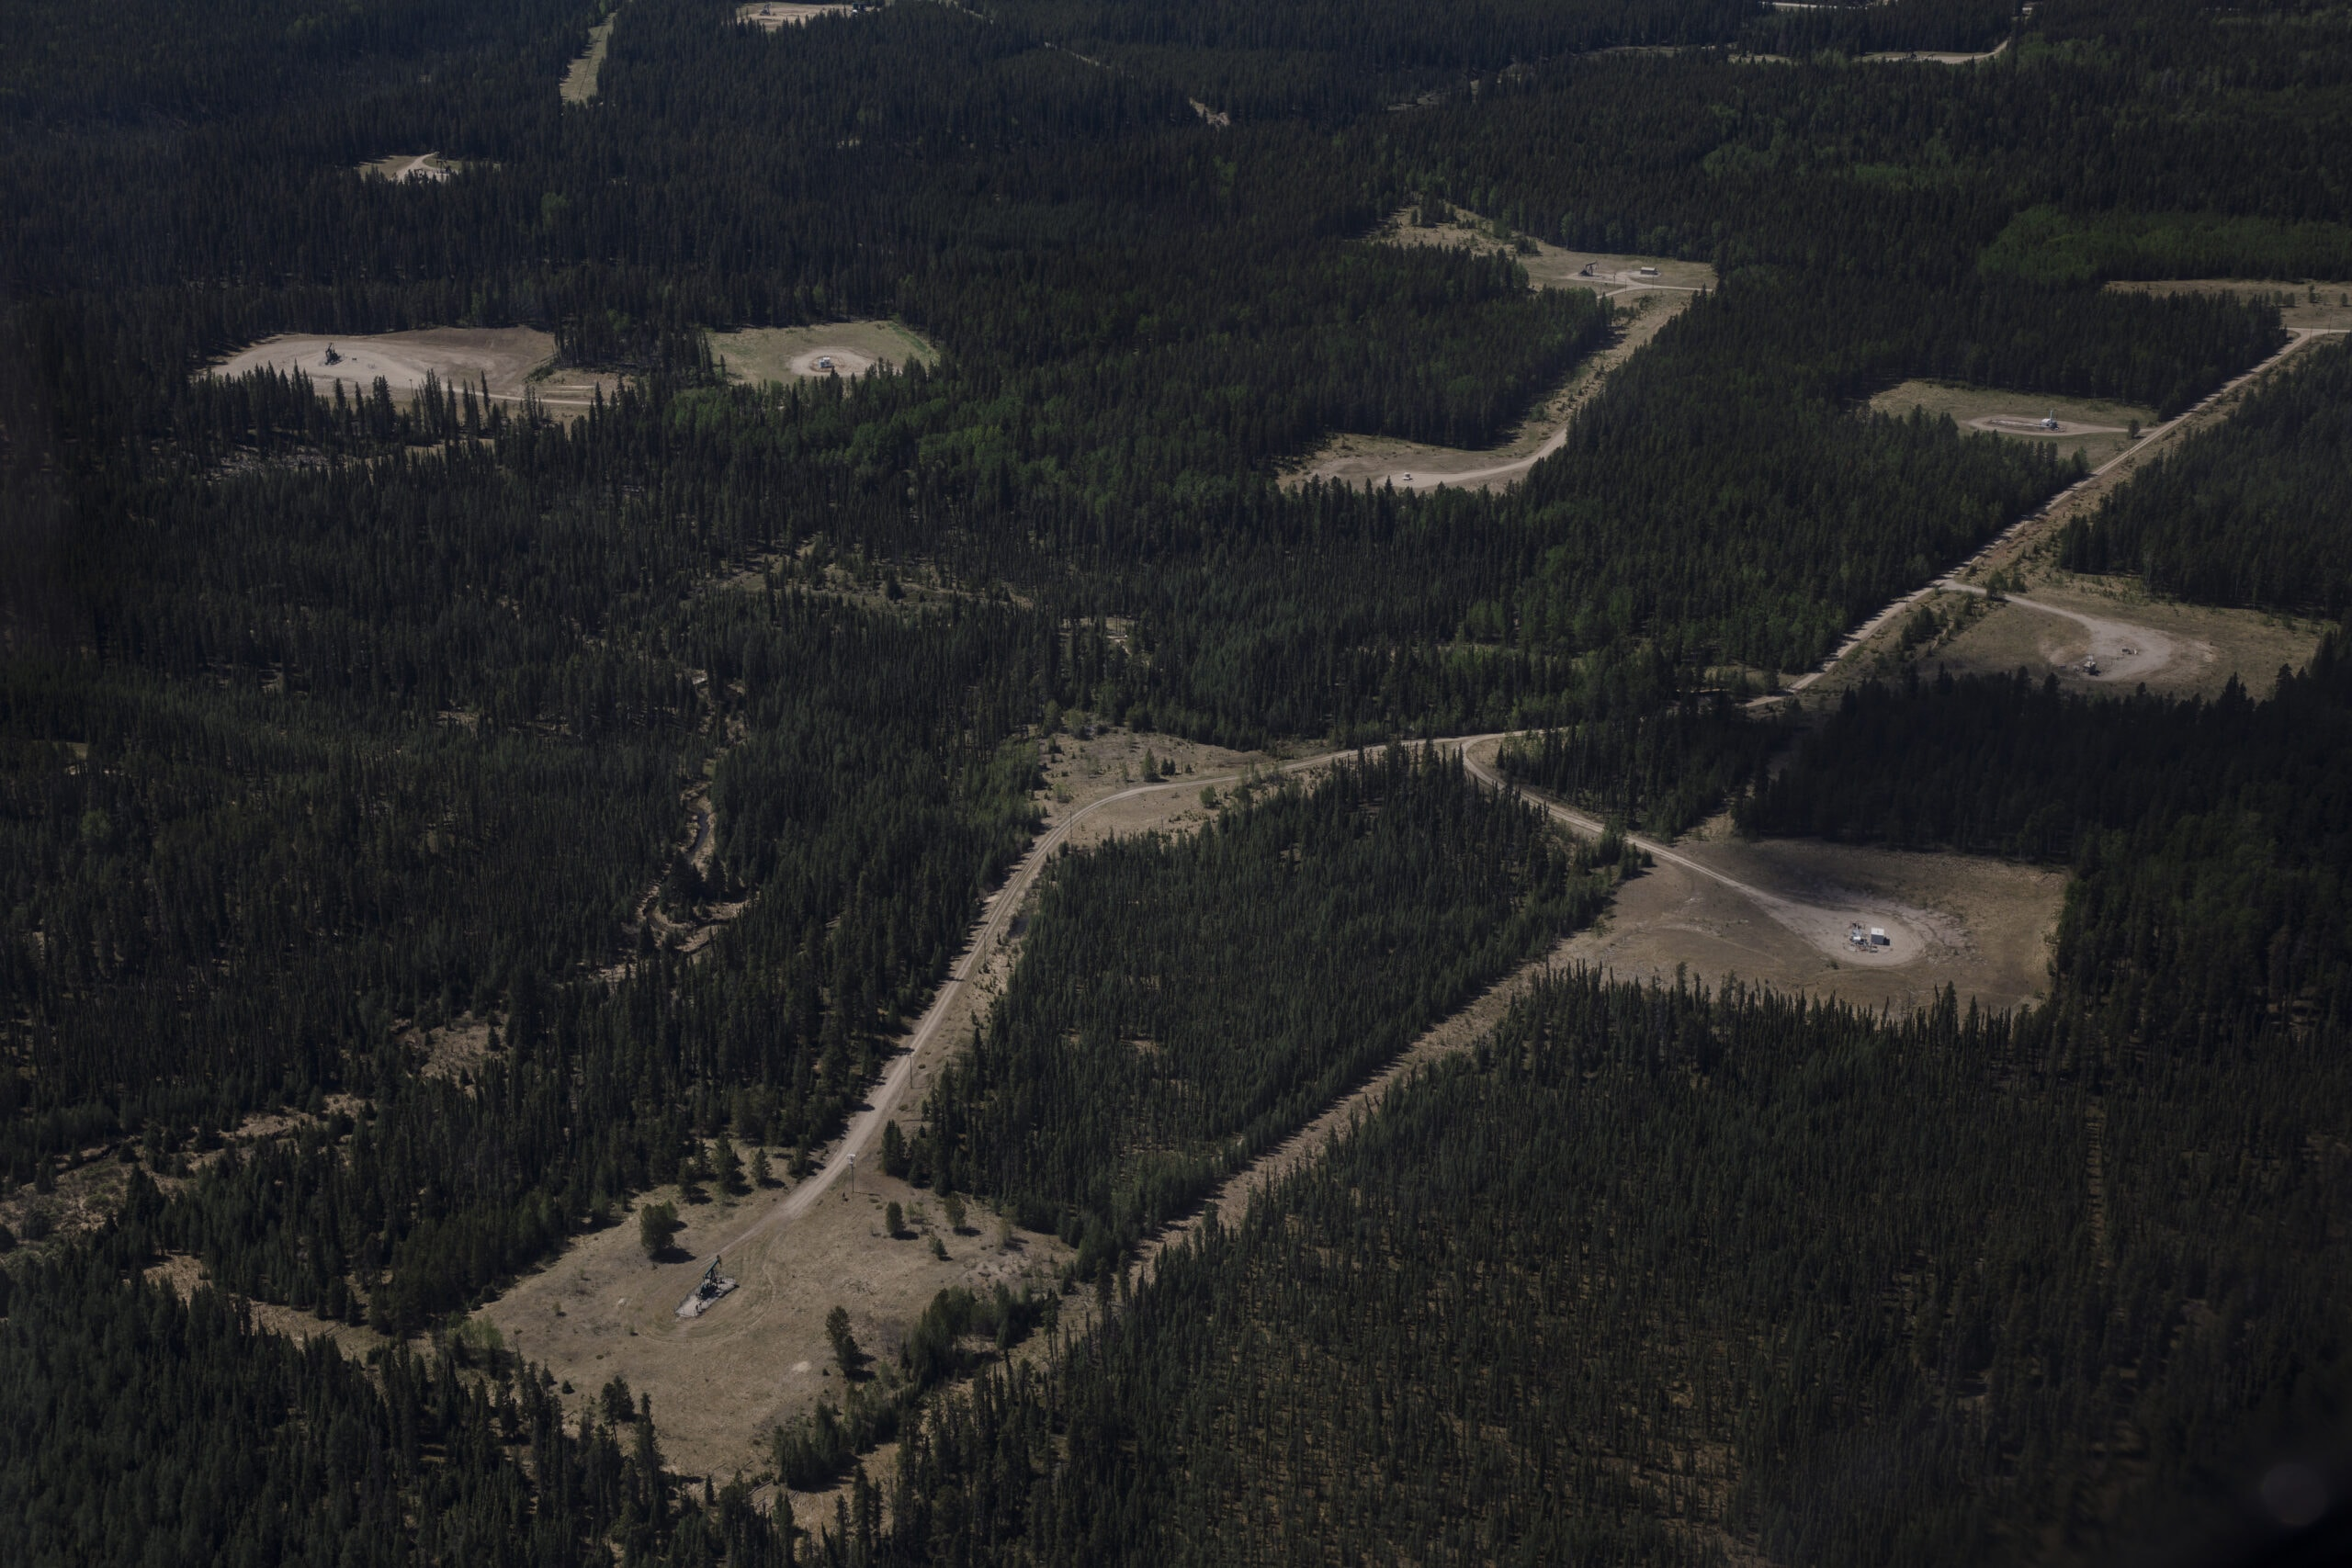 industry oil and gas well pads eastern slopes Rocky Mountains